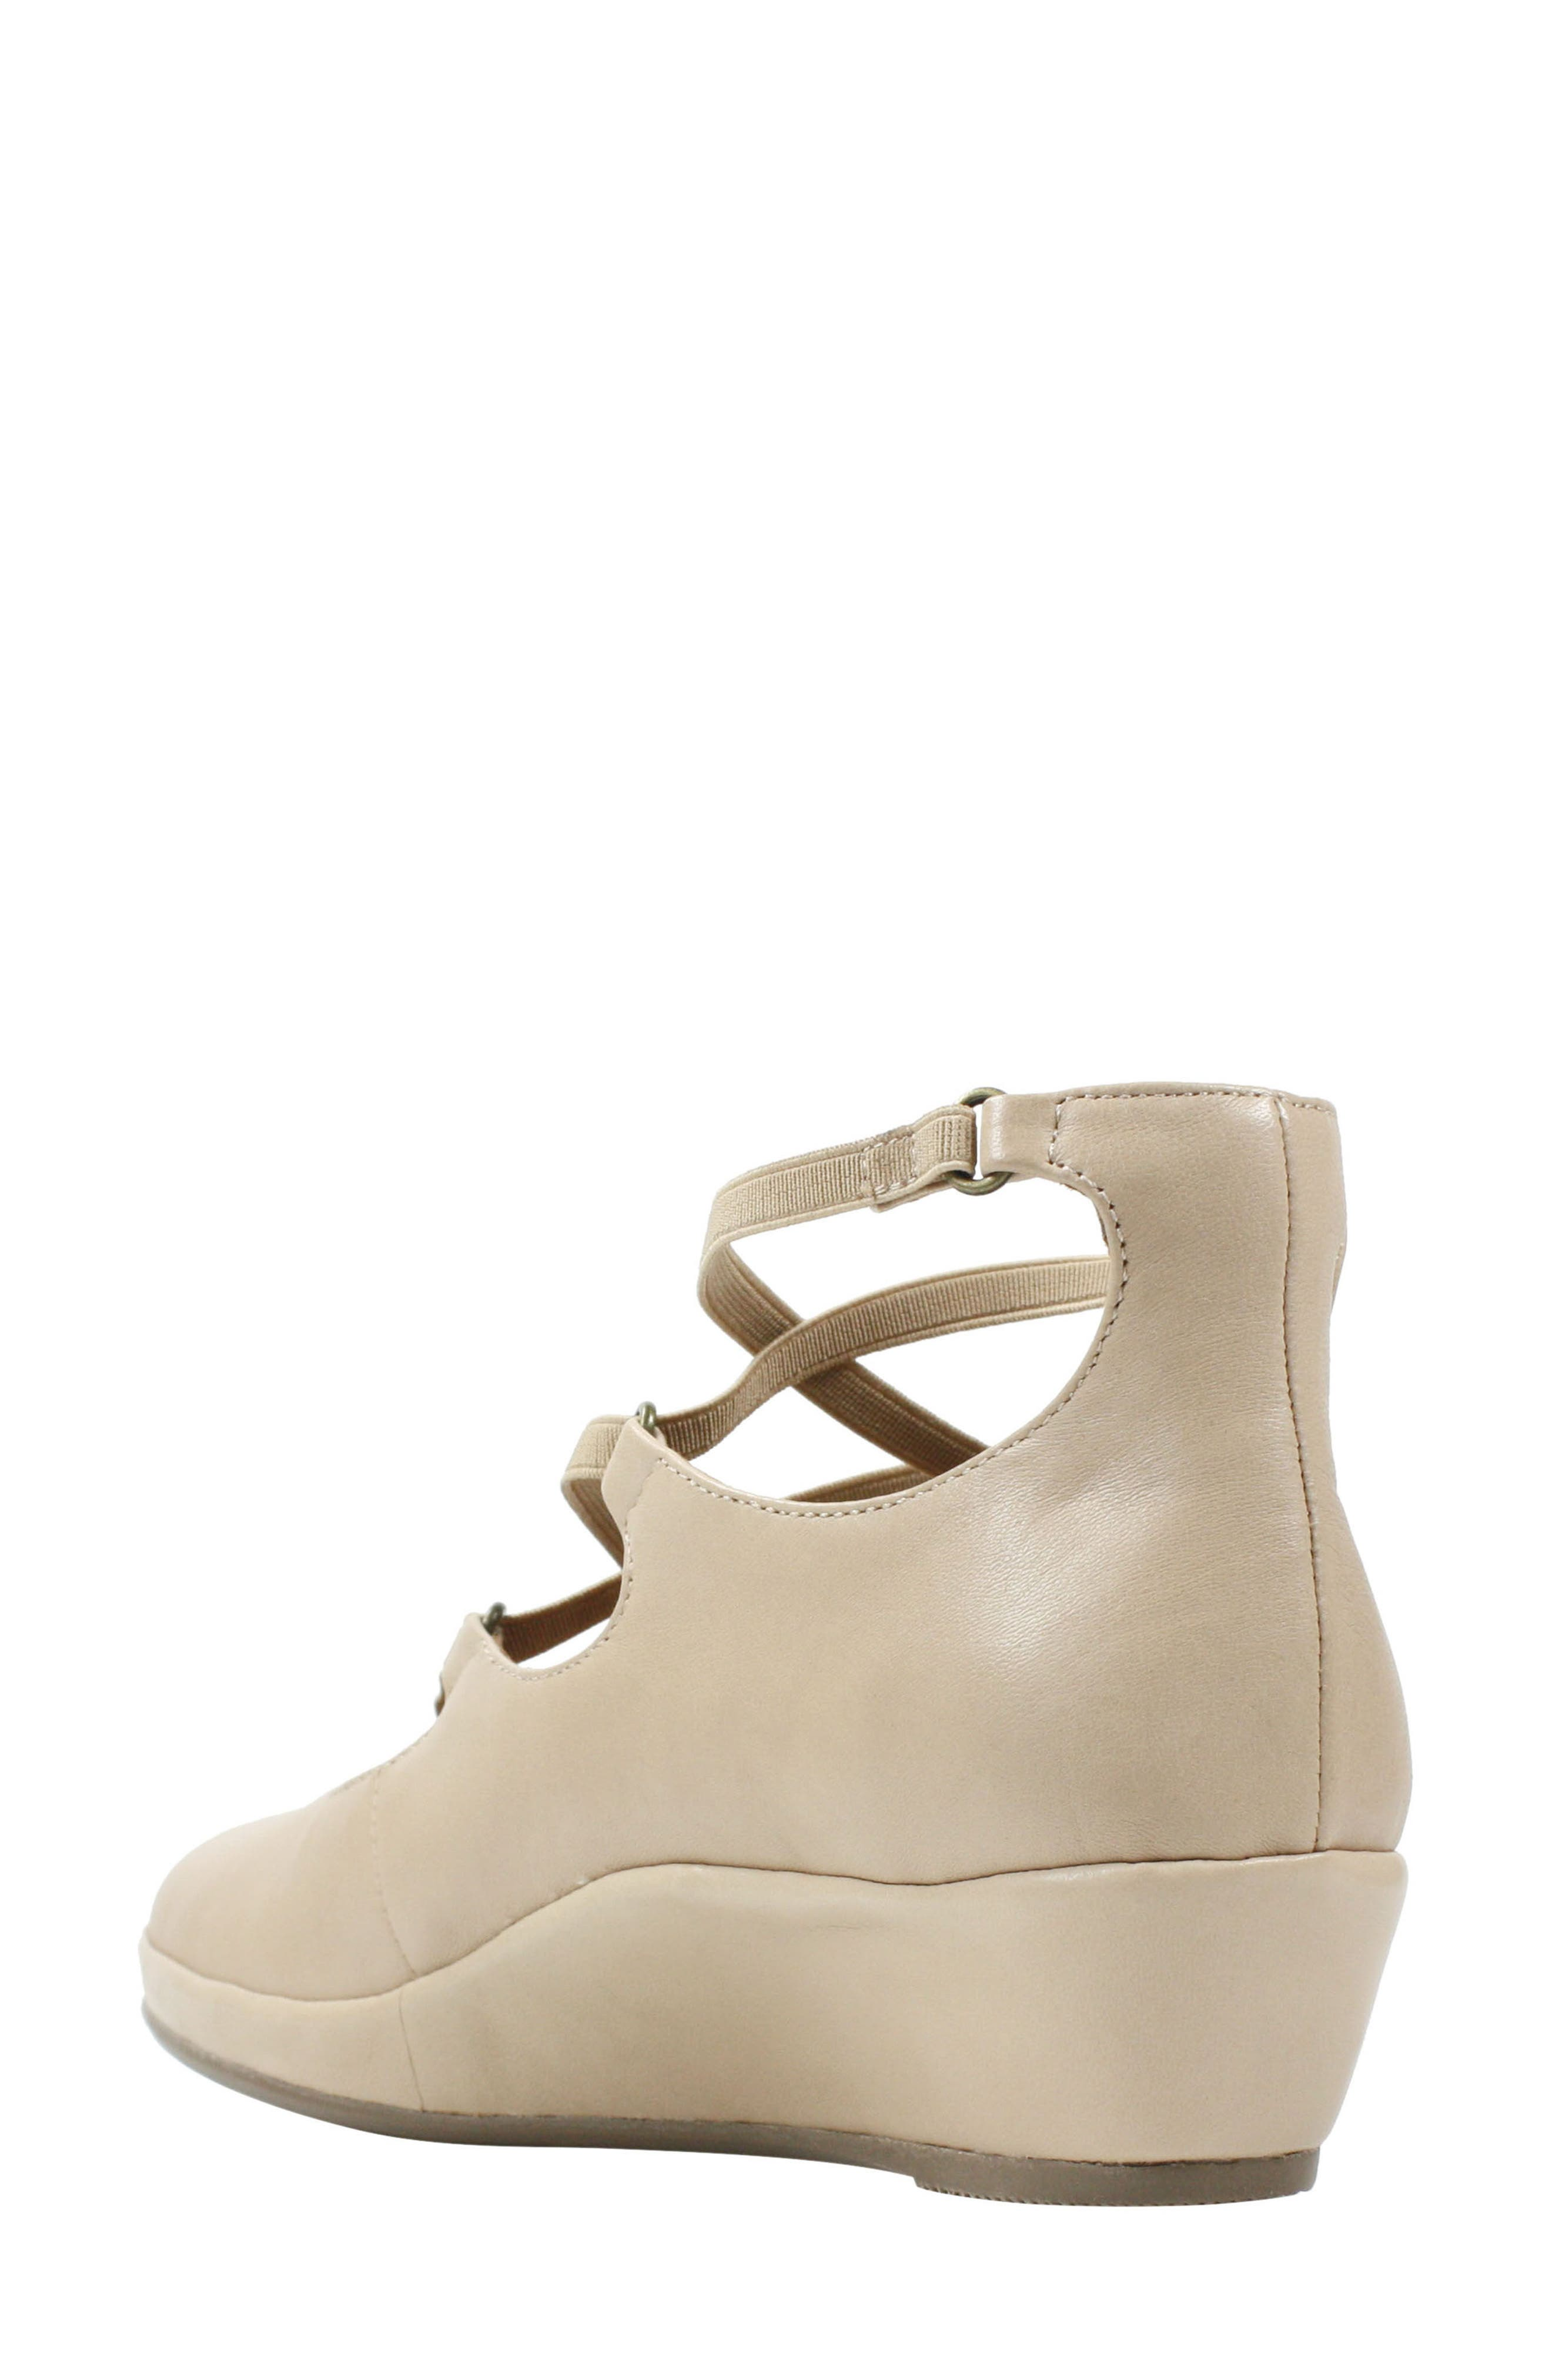 Benham Wedge,                             Alternate thumbnail 2, color,                             Nude Leather